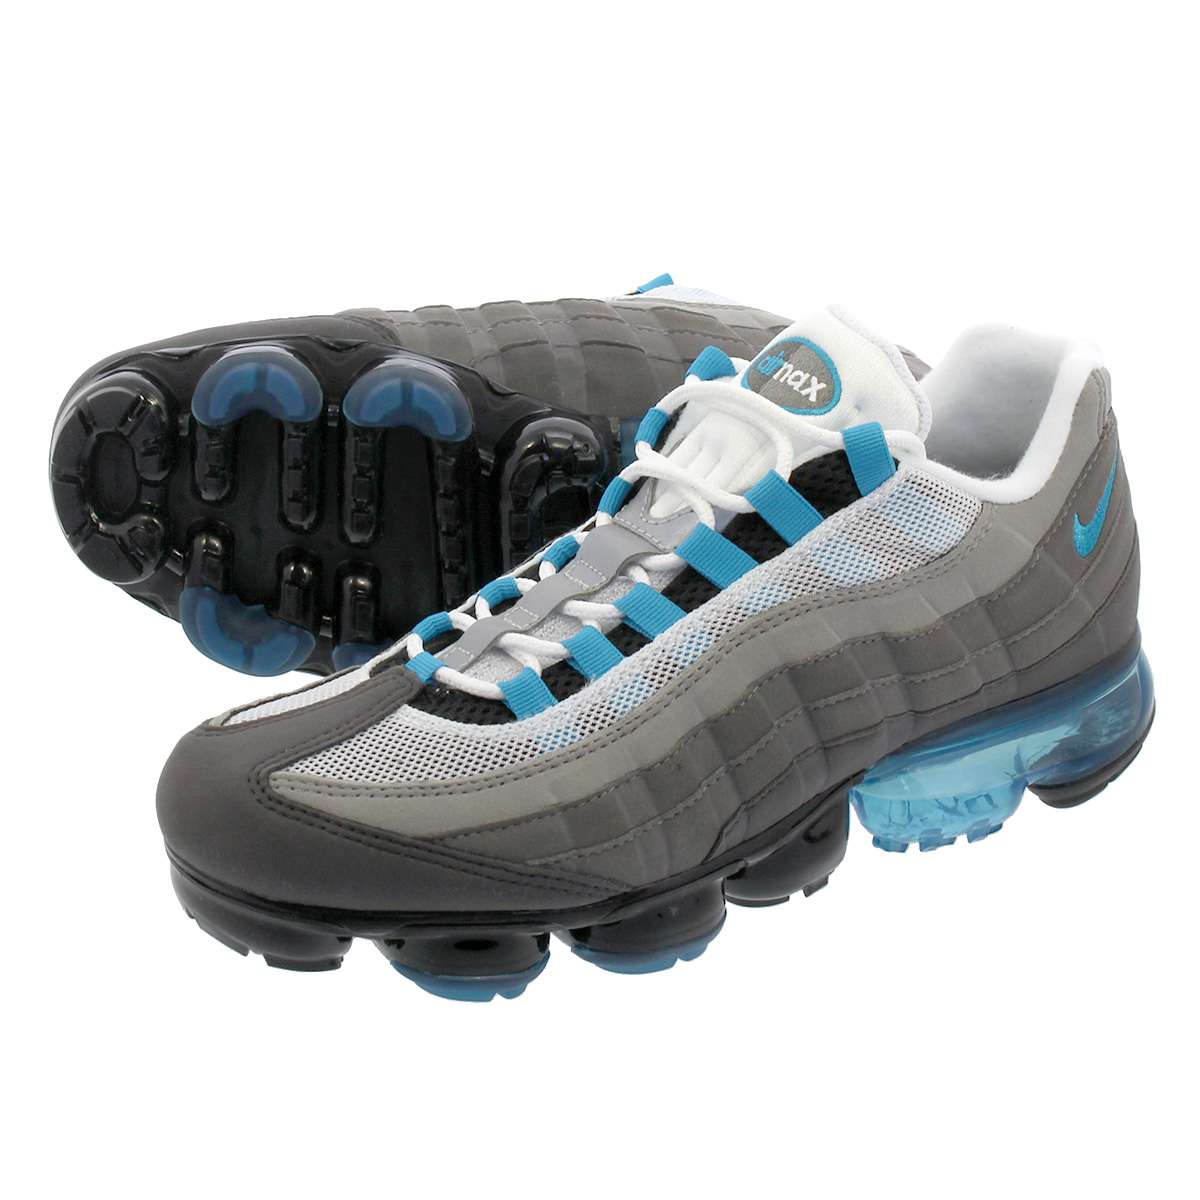 best sneakers ab9ad a309c NIKE AIR VAPORMAX 95 Nike air vapor max 95 BLACK/NEO TURQ/MEDIUM ASH/DARK  PEWTER aj7292-002